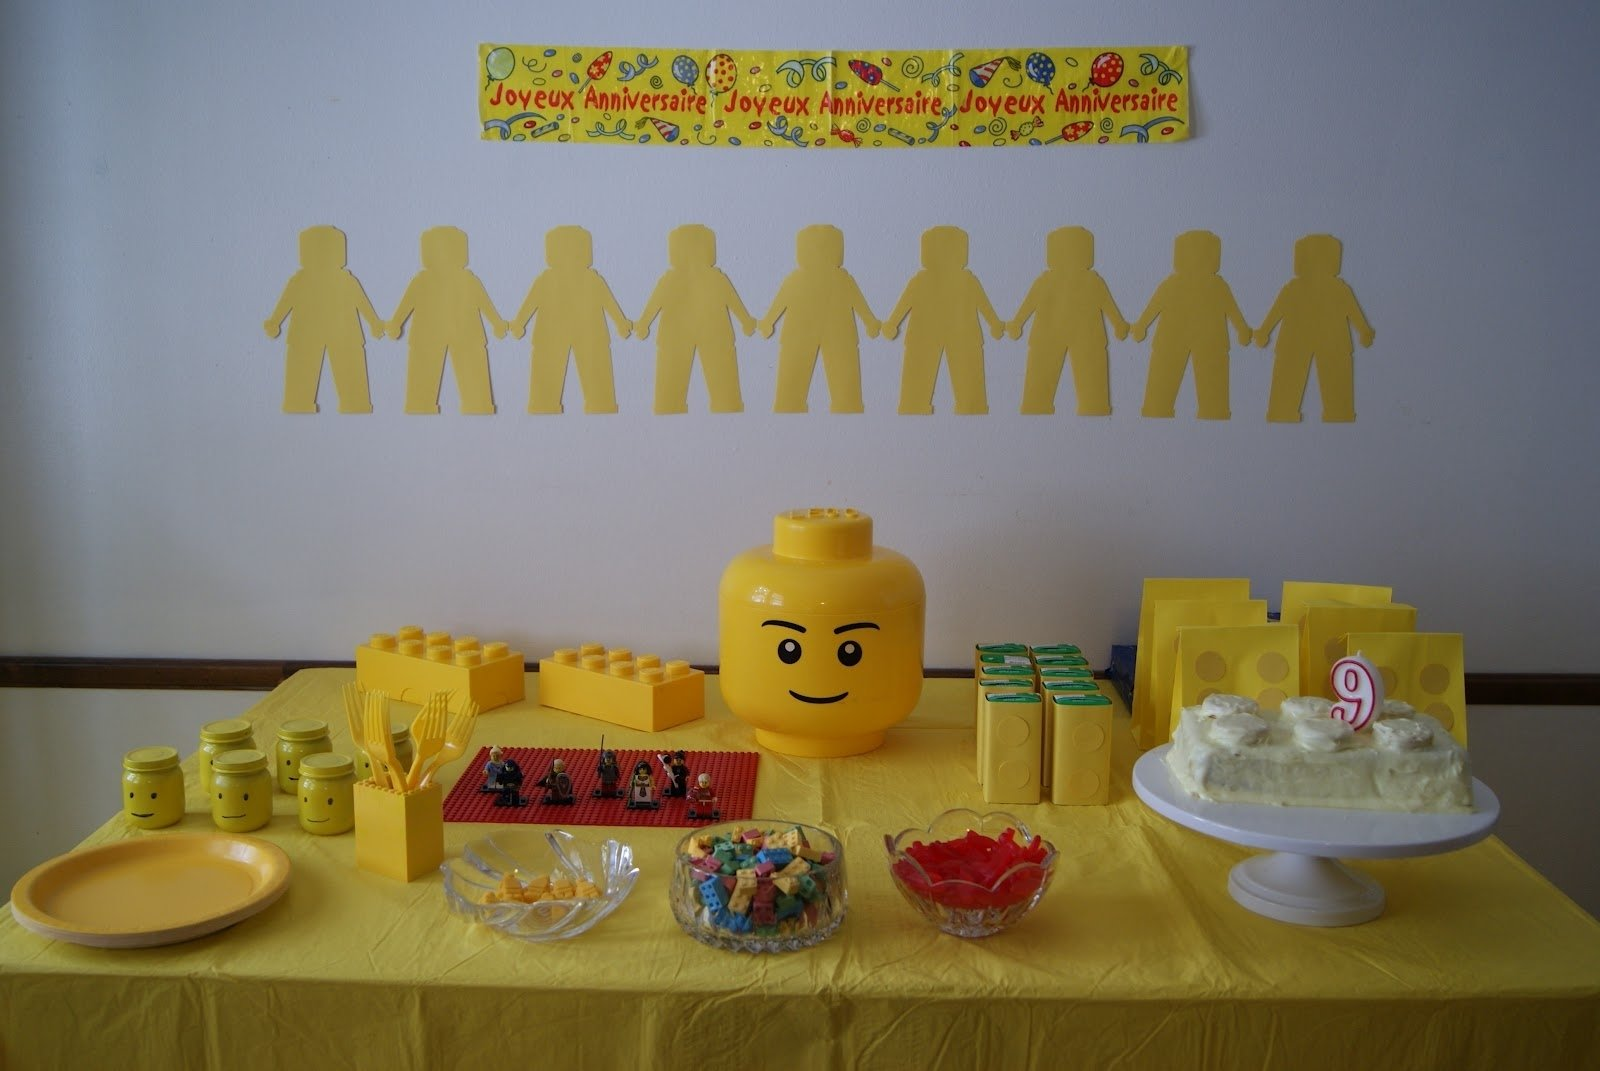 10 Lovable 8 Year Old Birthday Party Ideas For Boys Nest Full Of Eggs Yellow Lego